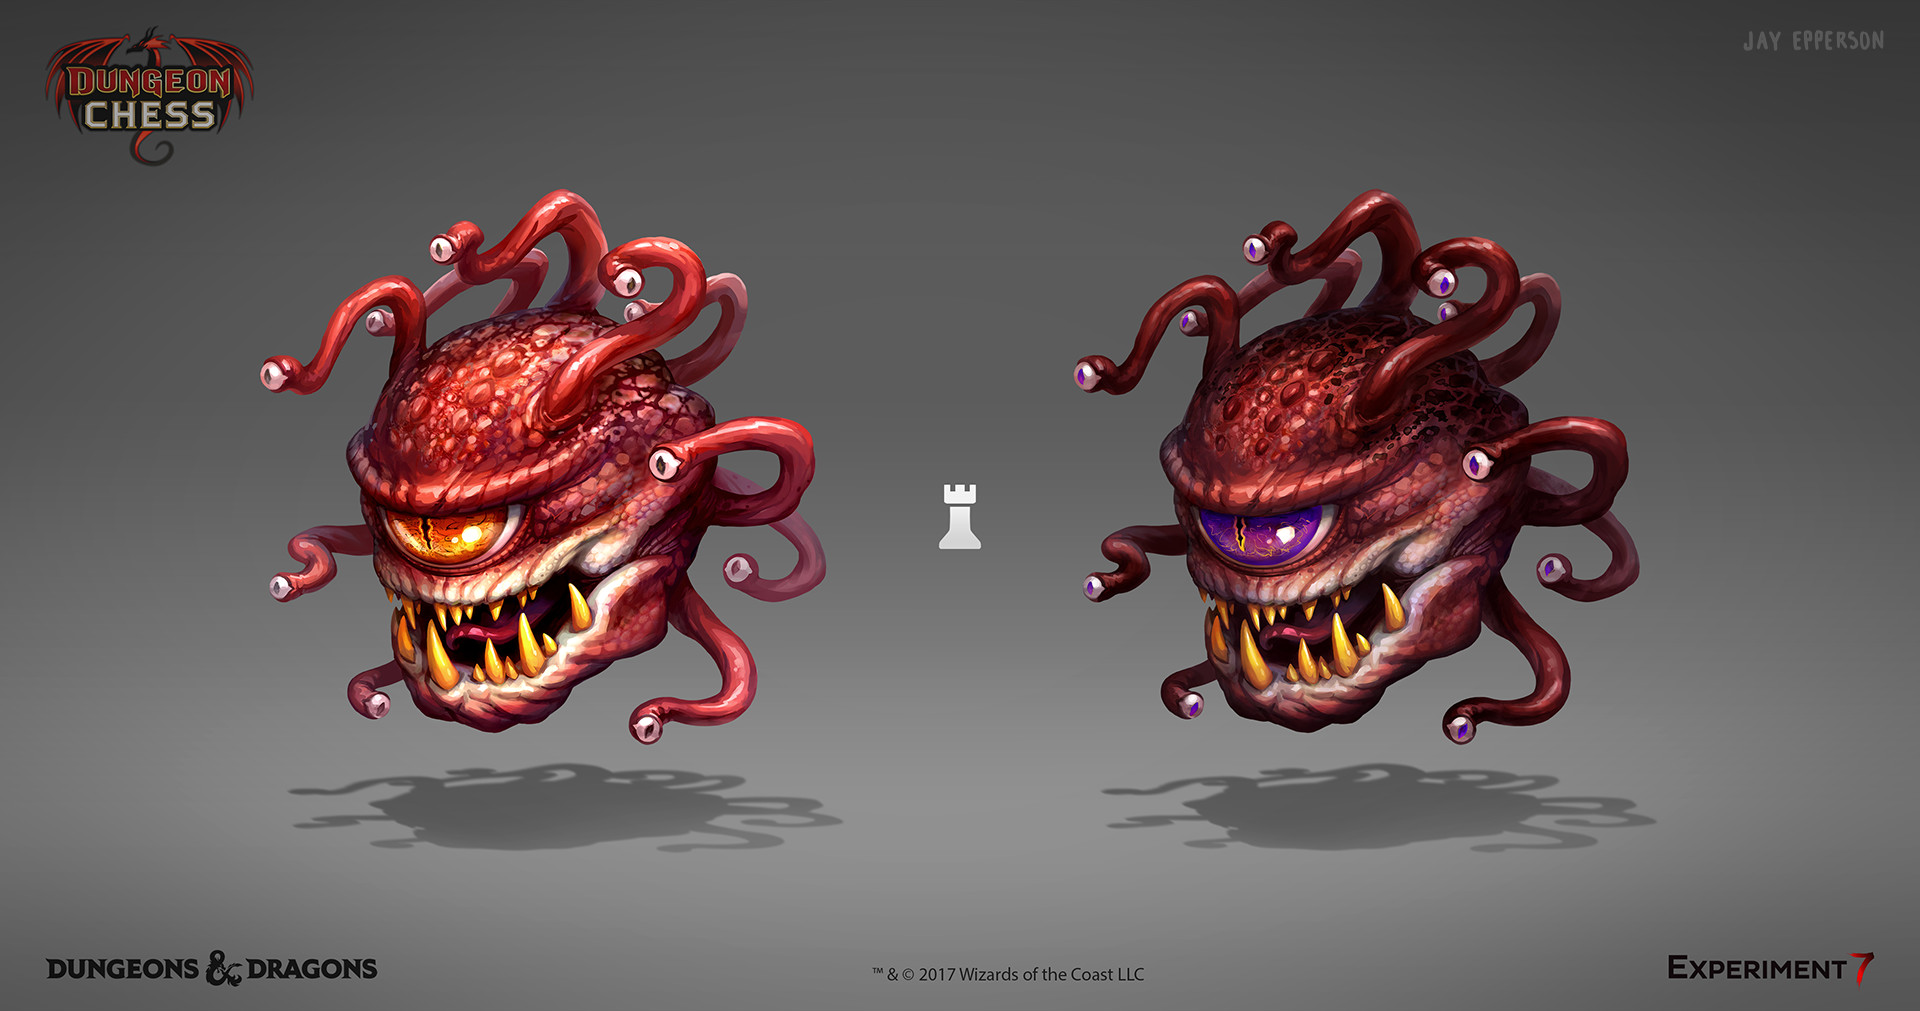 Jay epperson dungeonchess beholder